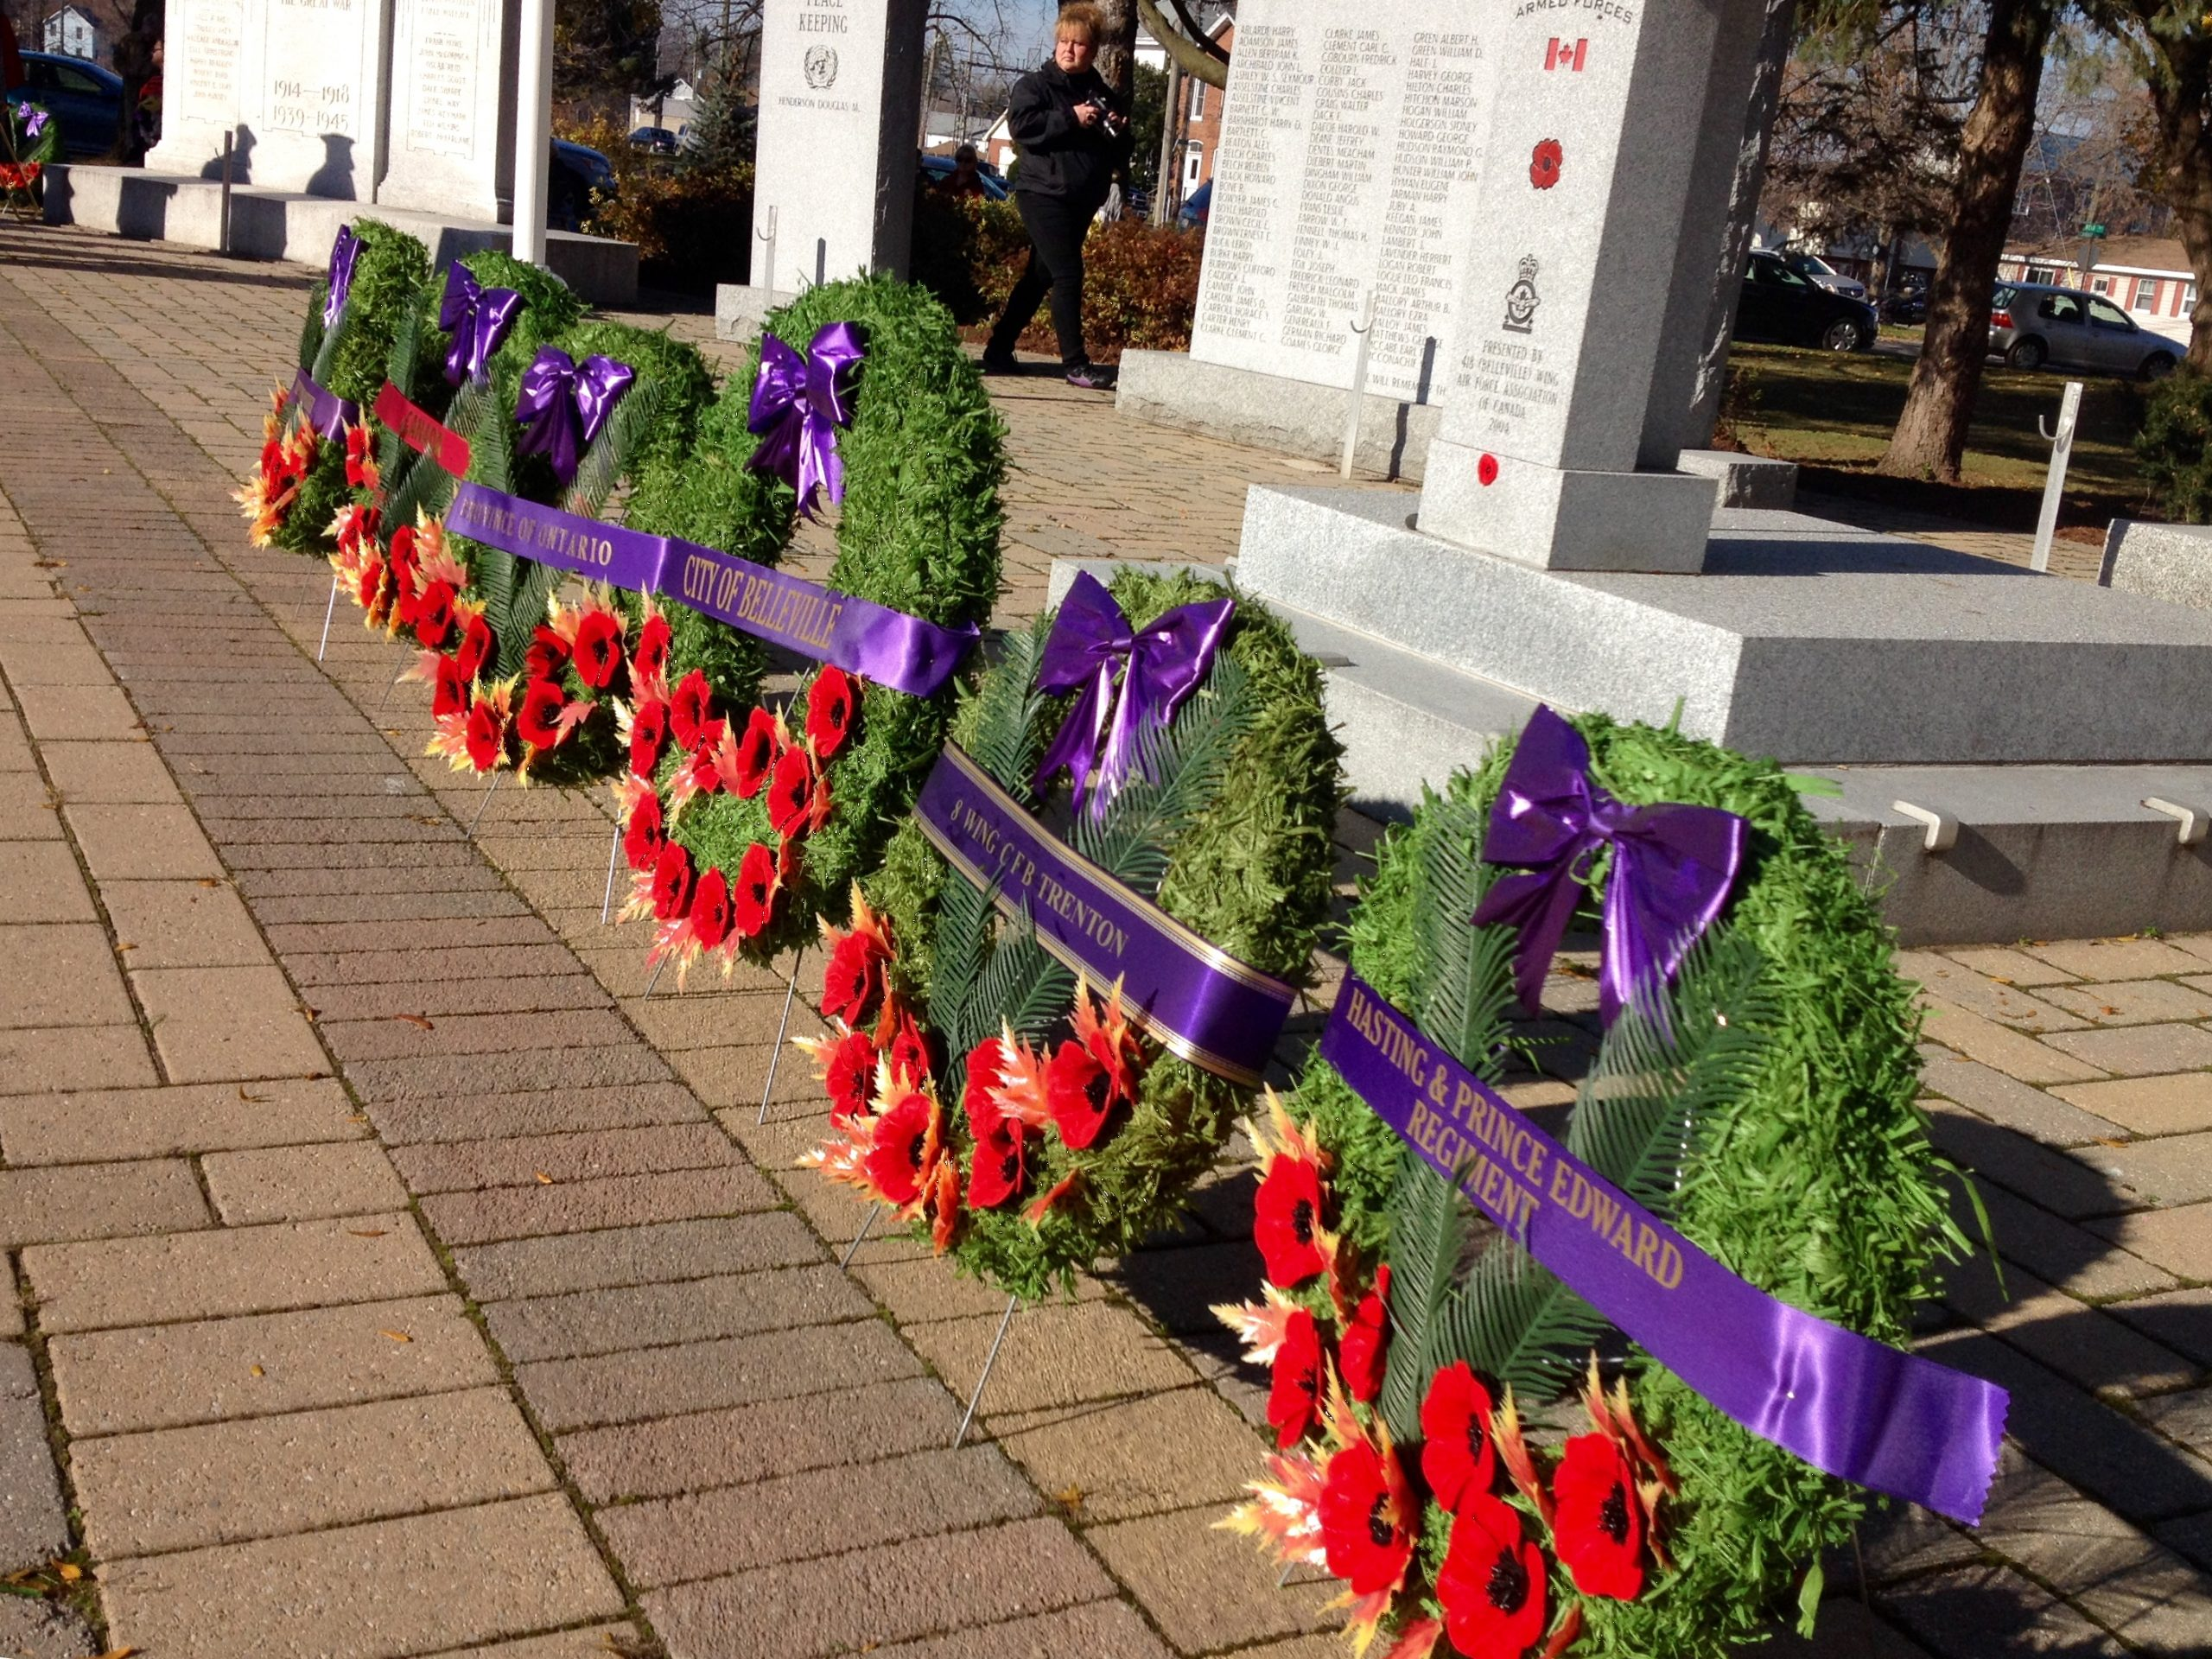 Marking Remembrance Day in Belleville